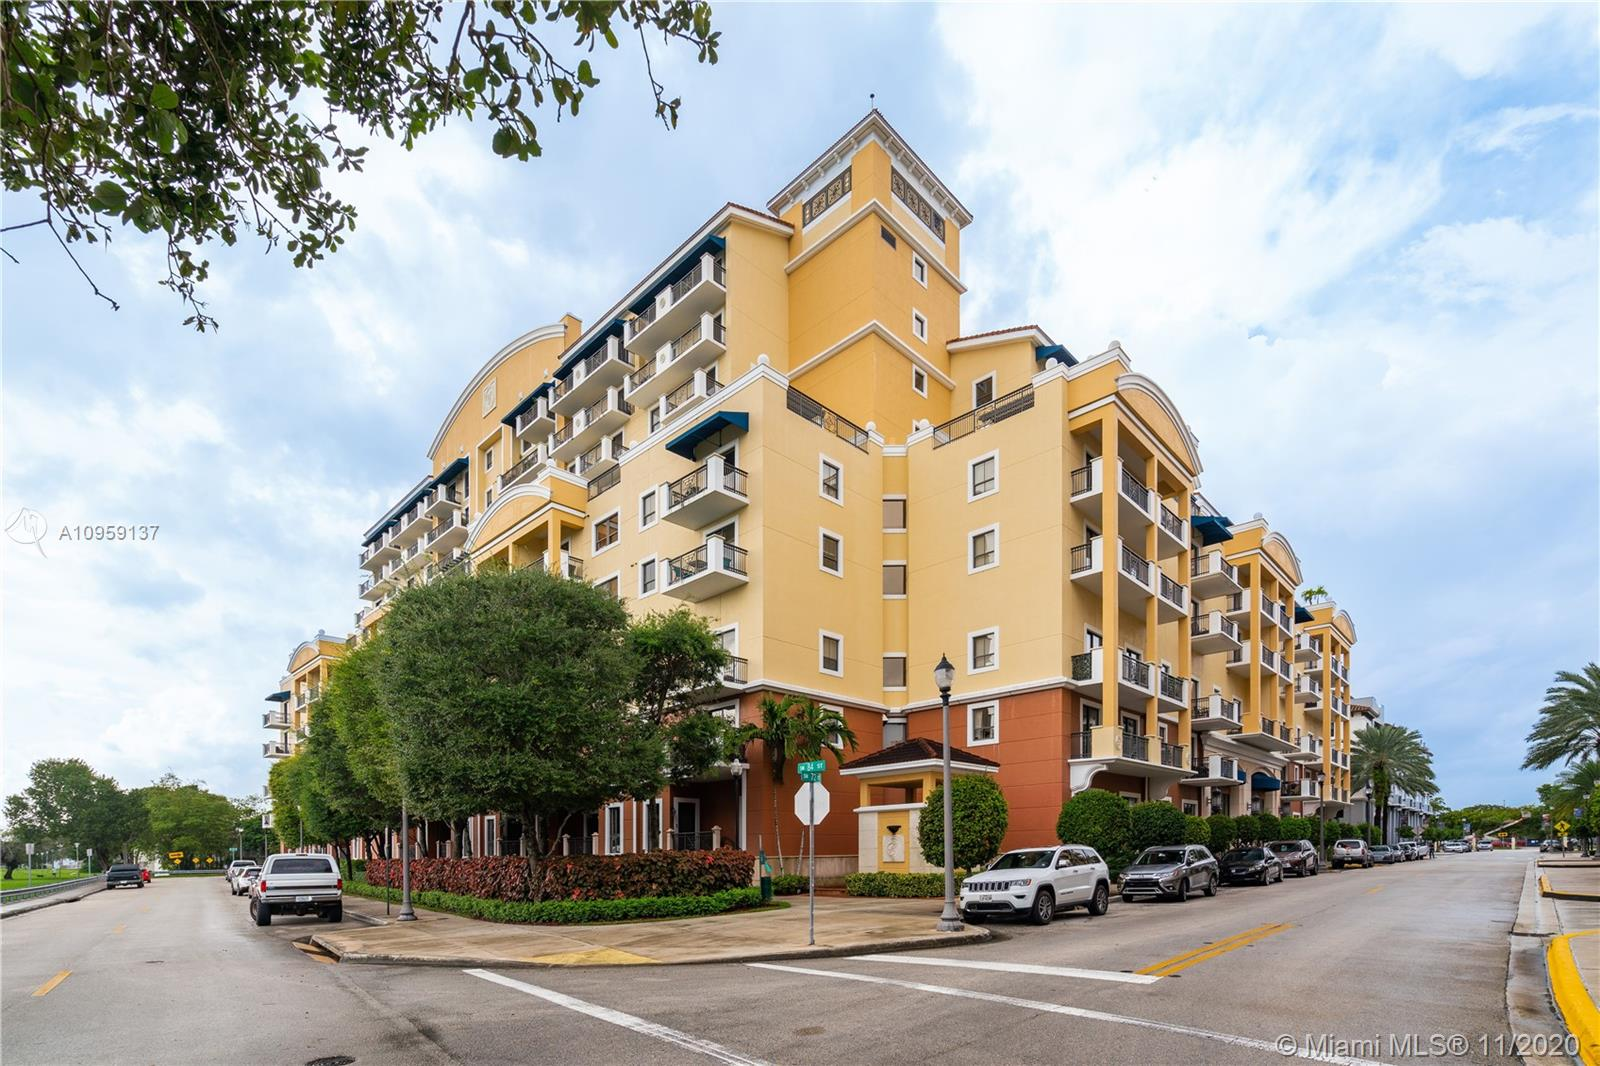 """A 2 Level TOWNHOME in a CONDO that you enter/exit the unit WITHOUT GETTING INTO AN ELEVATOR! Come see Unit 118 in the """"Colonnade AT Dadeland Condo SW""""! Enter this 2Bdrm/2.5 Ba/2 level Townhome from the Lobby with 24/7 Security and thru a private hallway just for your unit & 1 other unit! From the Foyer entry you will see the beautiful wood floors, high volume ceilings & know that you have ALL IMPACT Glass windows/Doors to the exterior! The kitchen has high quality wood cabinetry, granite counter-tops, SS GE Profile Appliances and opens to the entertaining areas separated by a Bar/Snack counter-top! The Master suite has a balcony overlooking 73 Court (NOT 72 AVE!), 2 Walk-In closets and a large Master bath with a Roman Tub & a separate Shower and double vanities!  See supplemental remarks."""